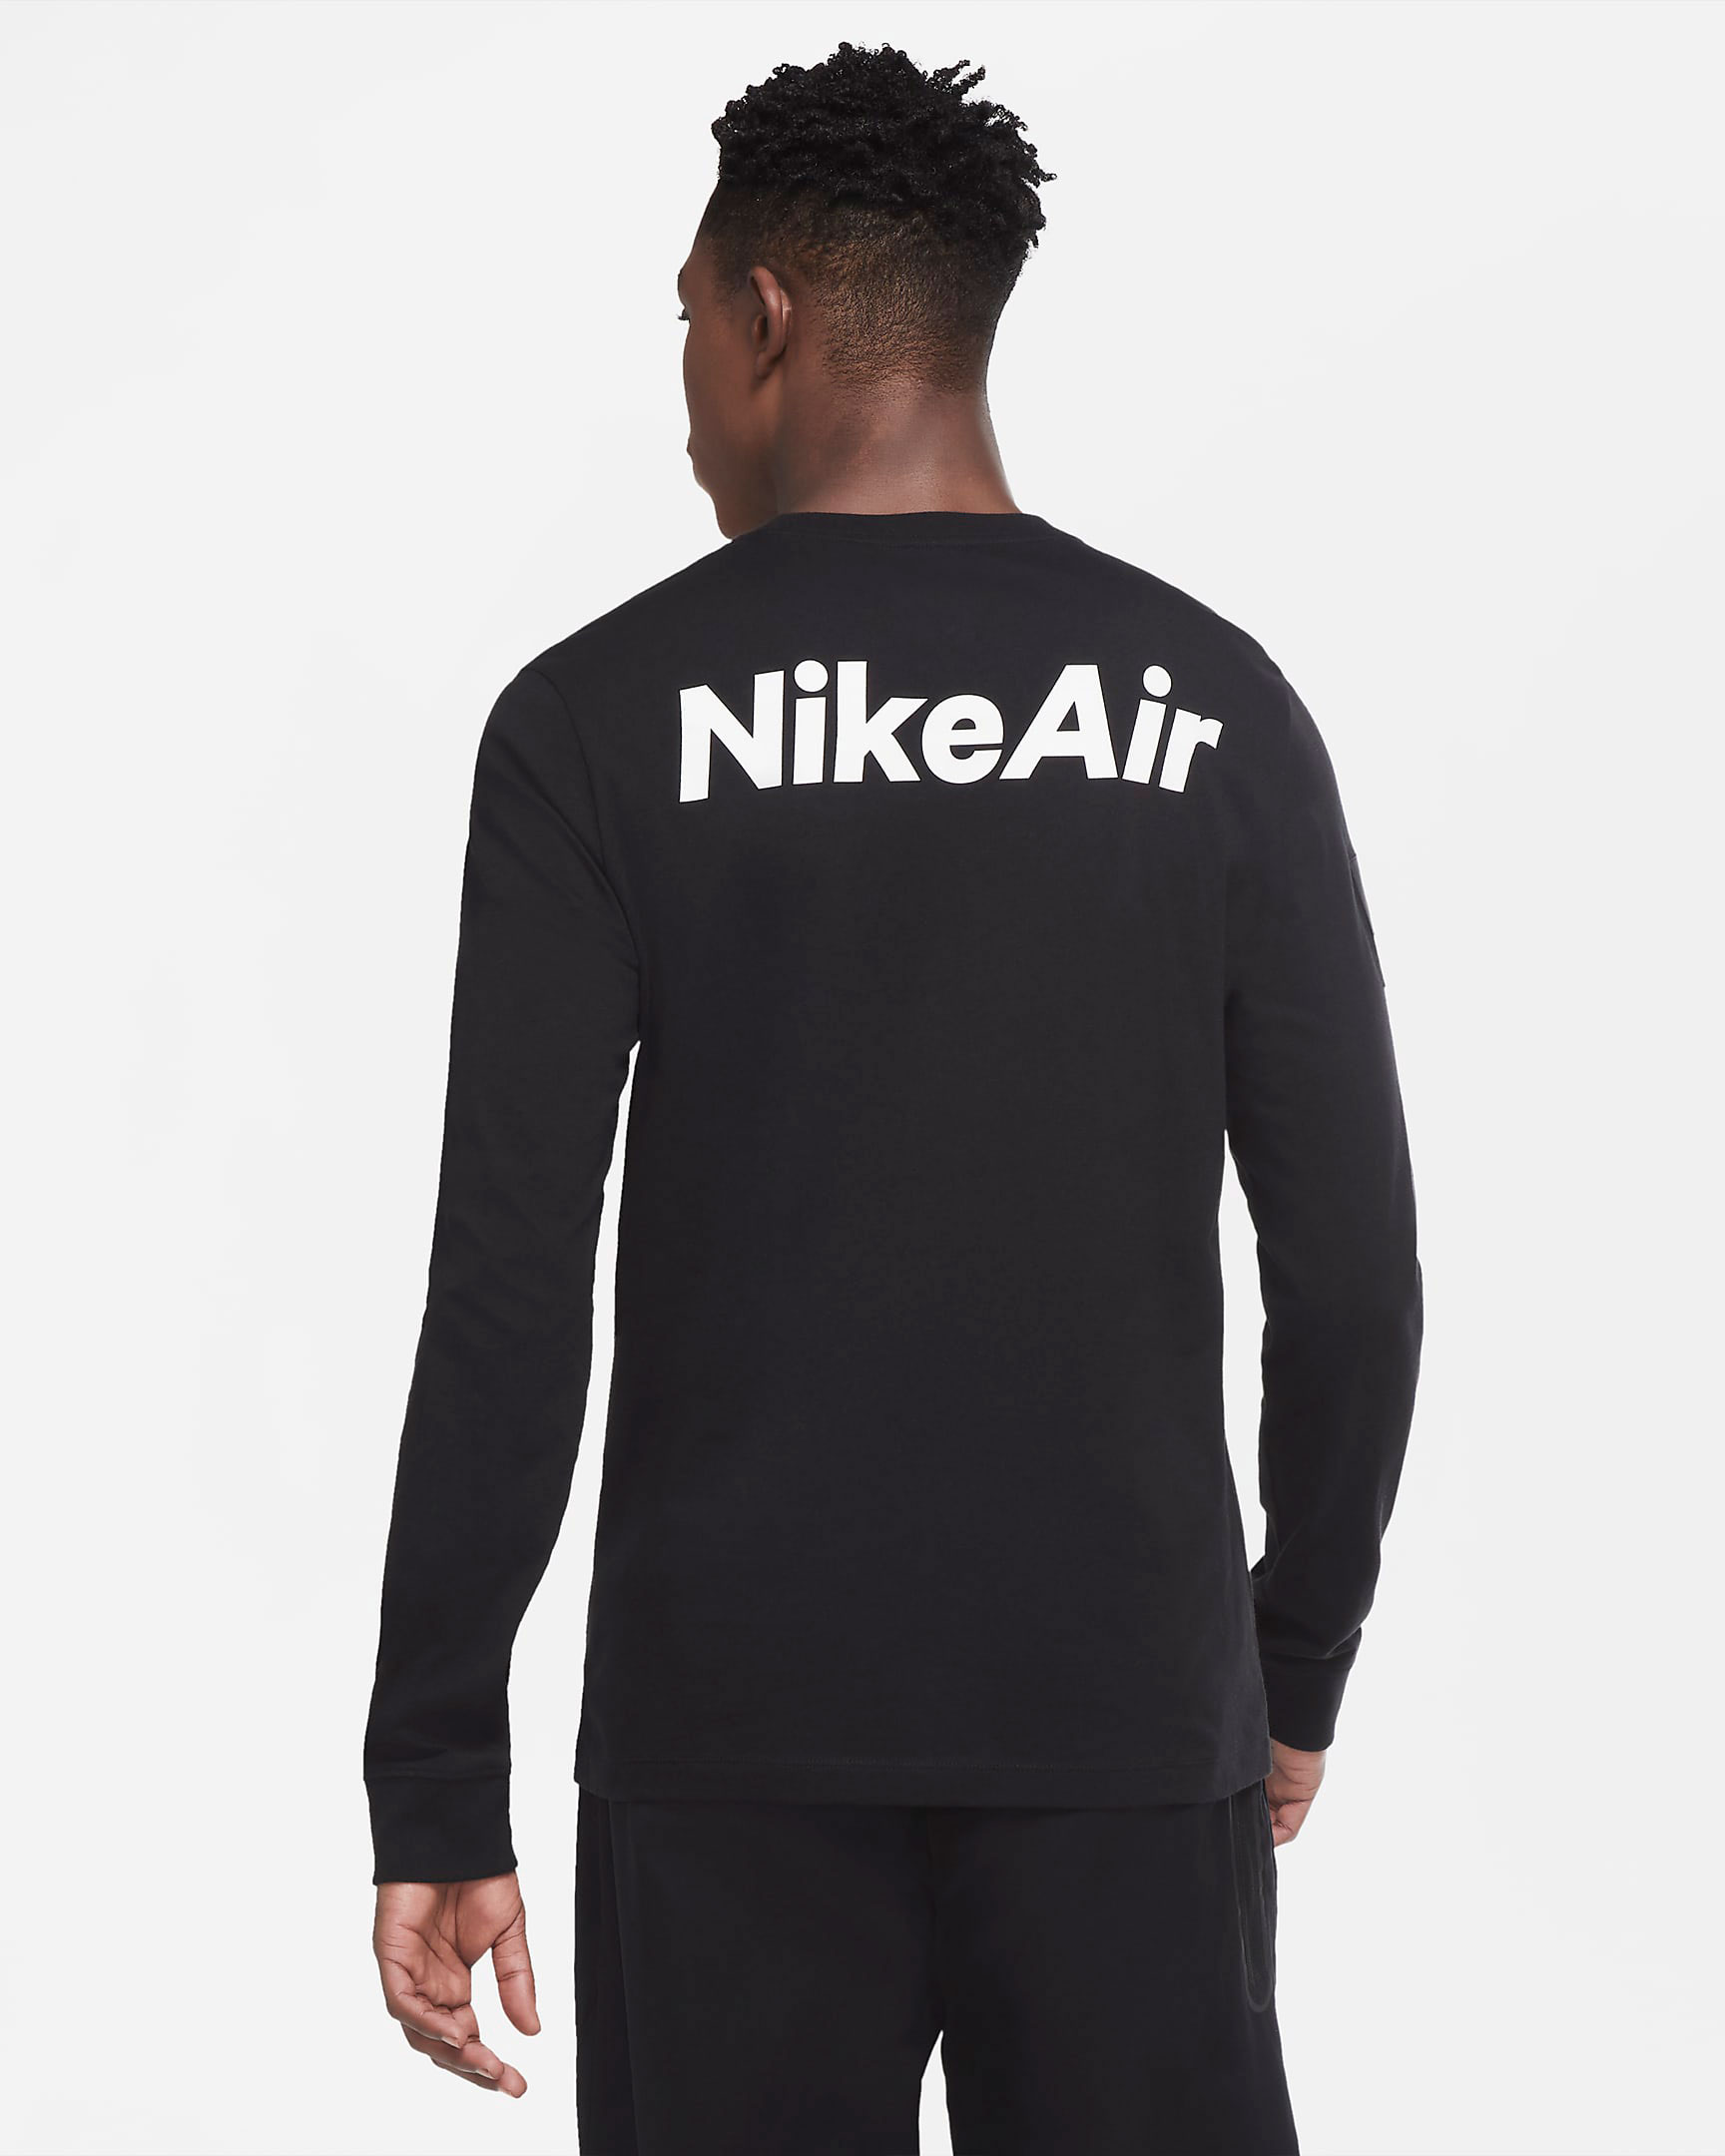 nike-foamposite-one-anthracite-blackout-long-sleeve-shirt-match-2